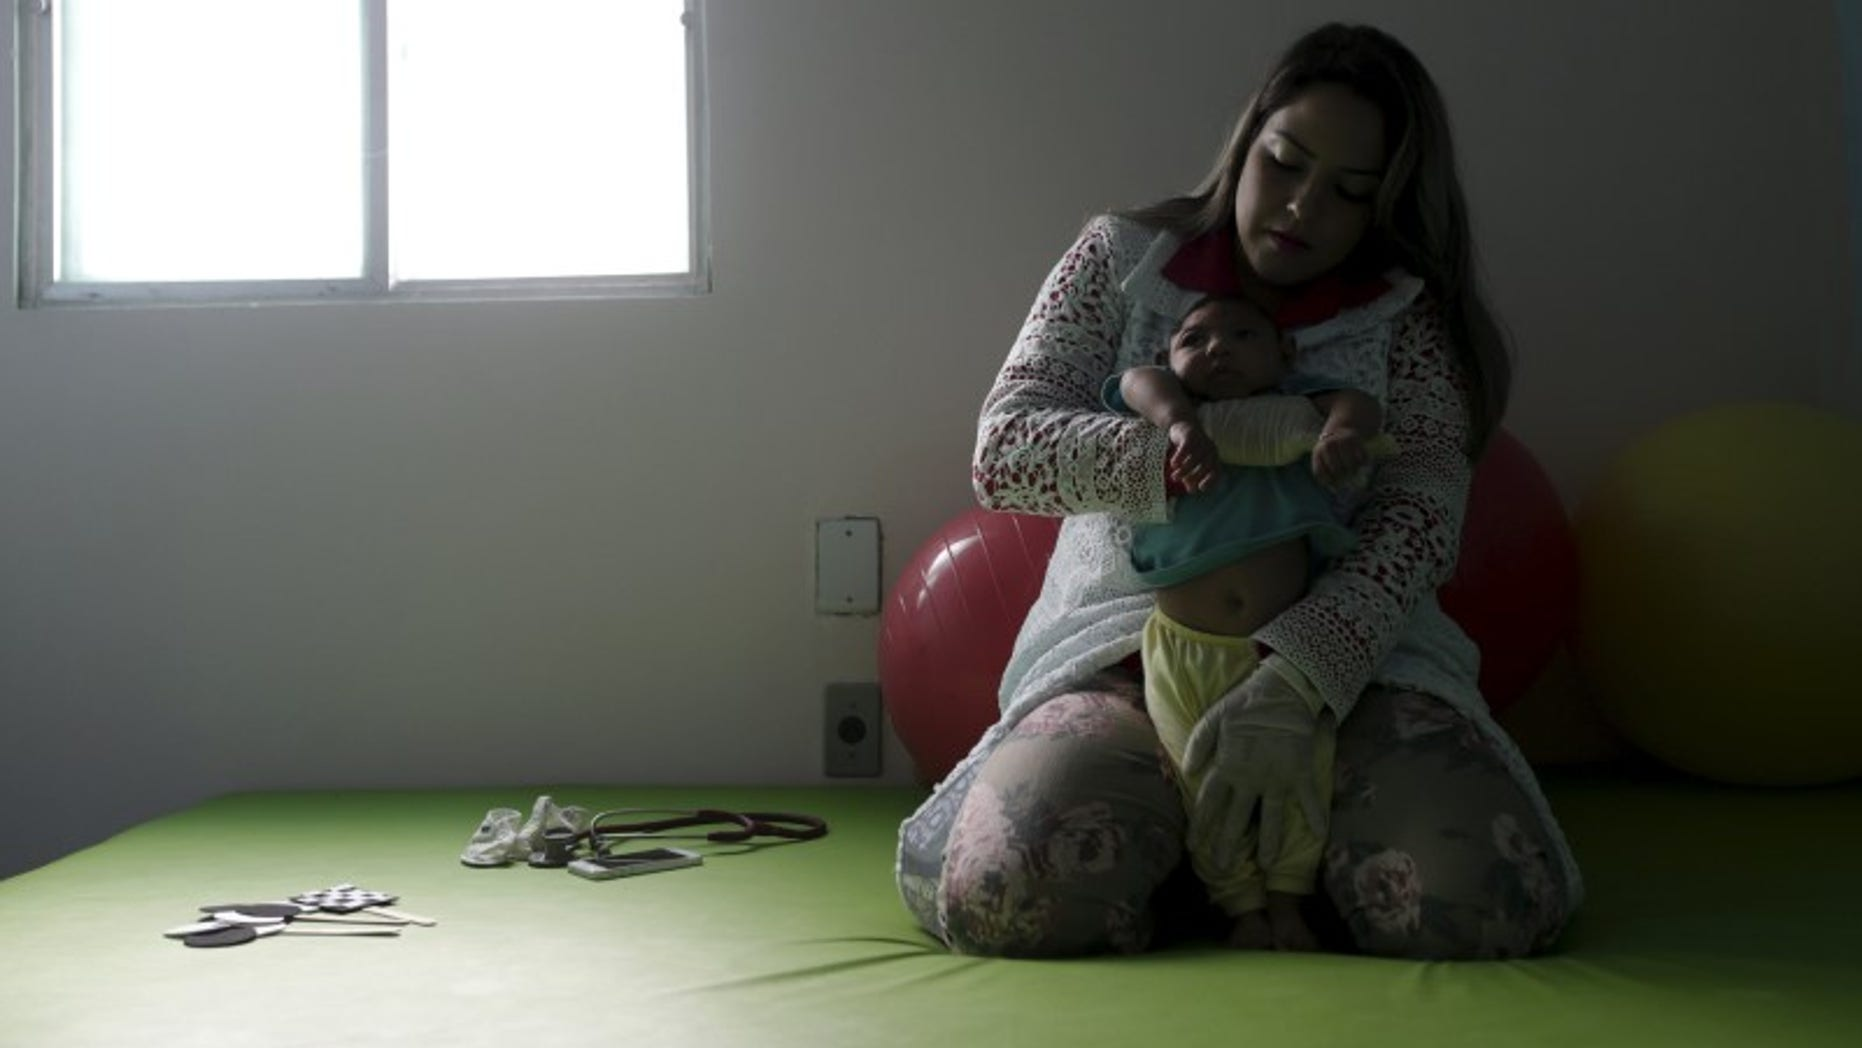 Physiotherapist Leal does exercises with Lucas, 4-months old, who is Miriam Araujo's second child and born with microcephaly in Pedro I hospital in Campina Grande